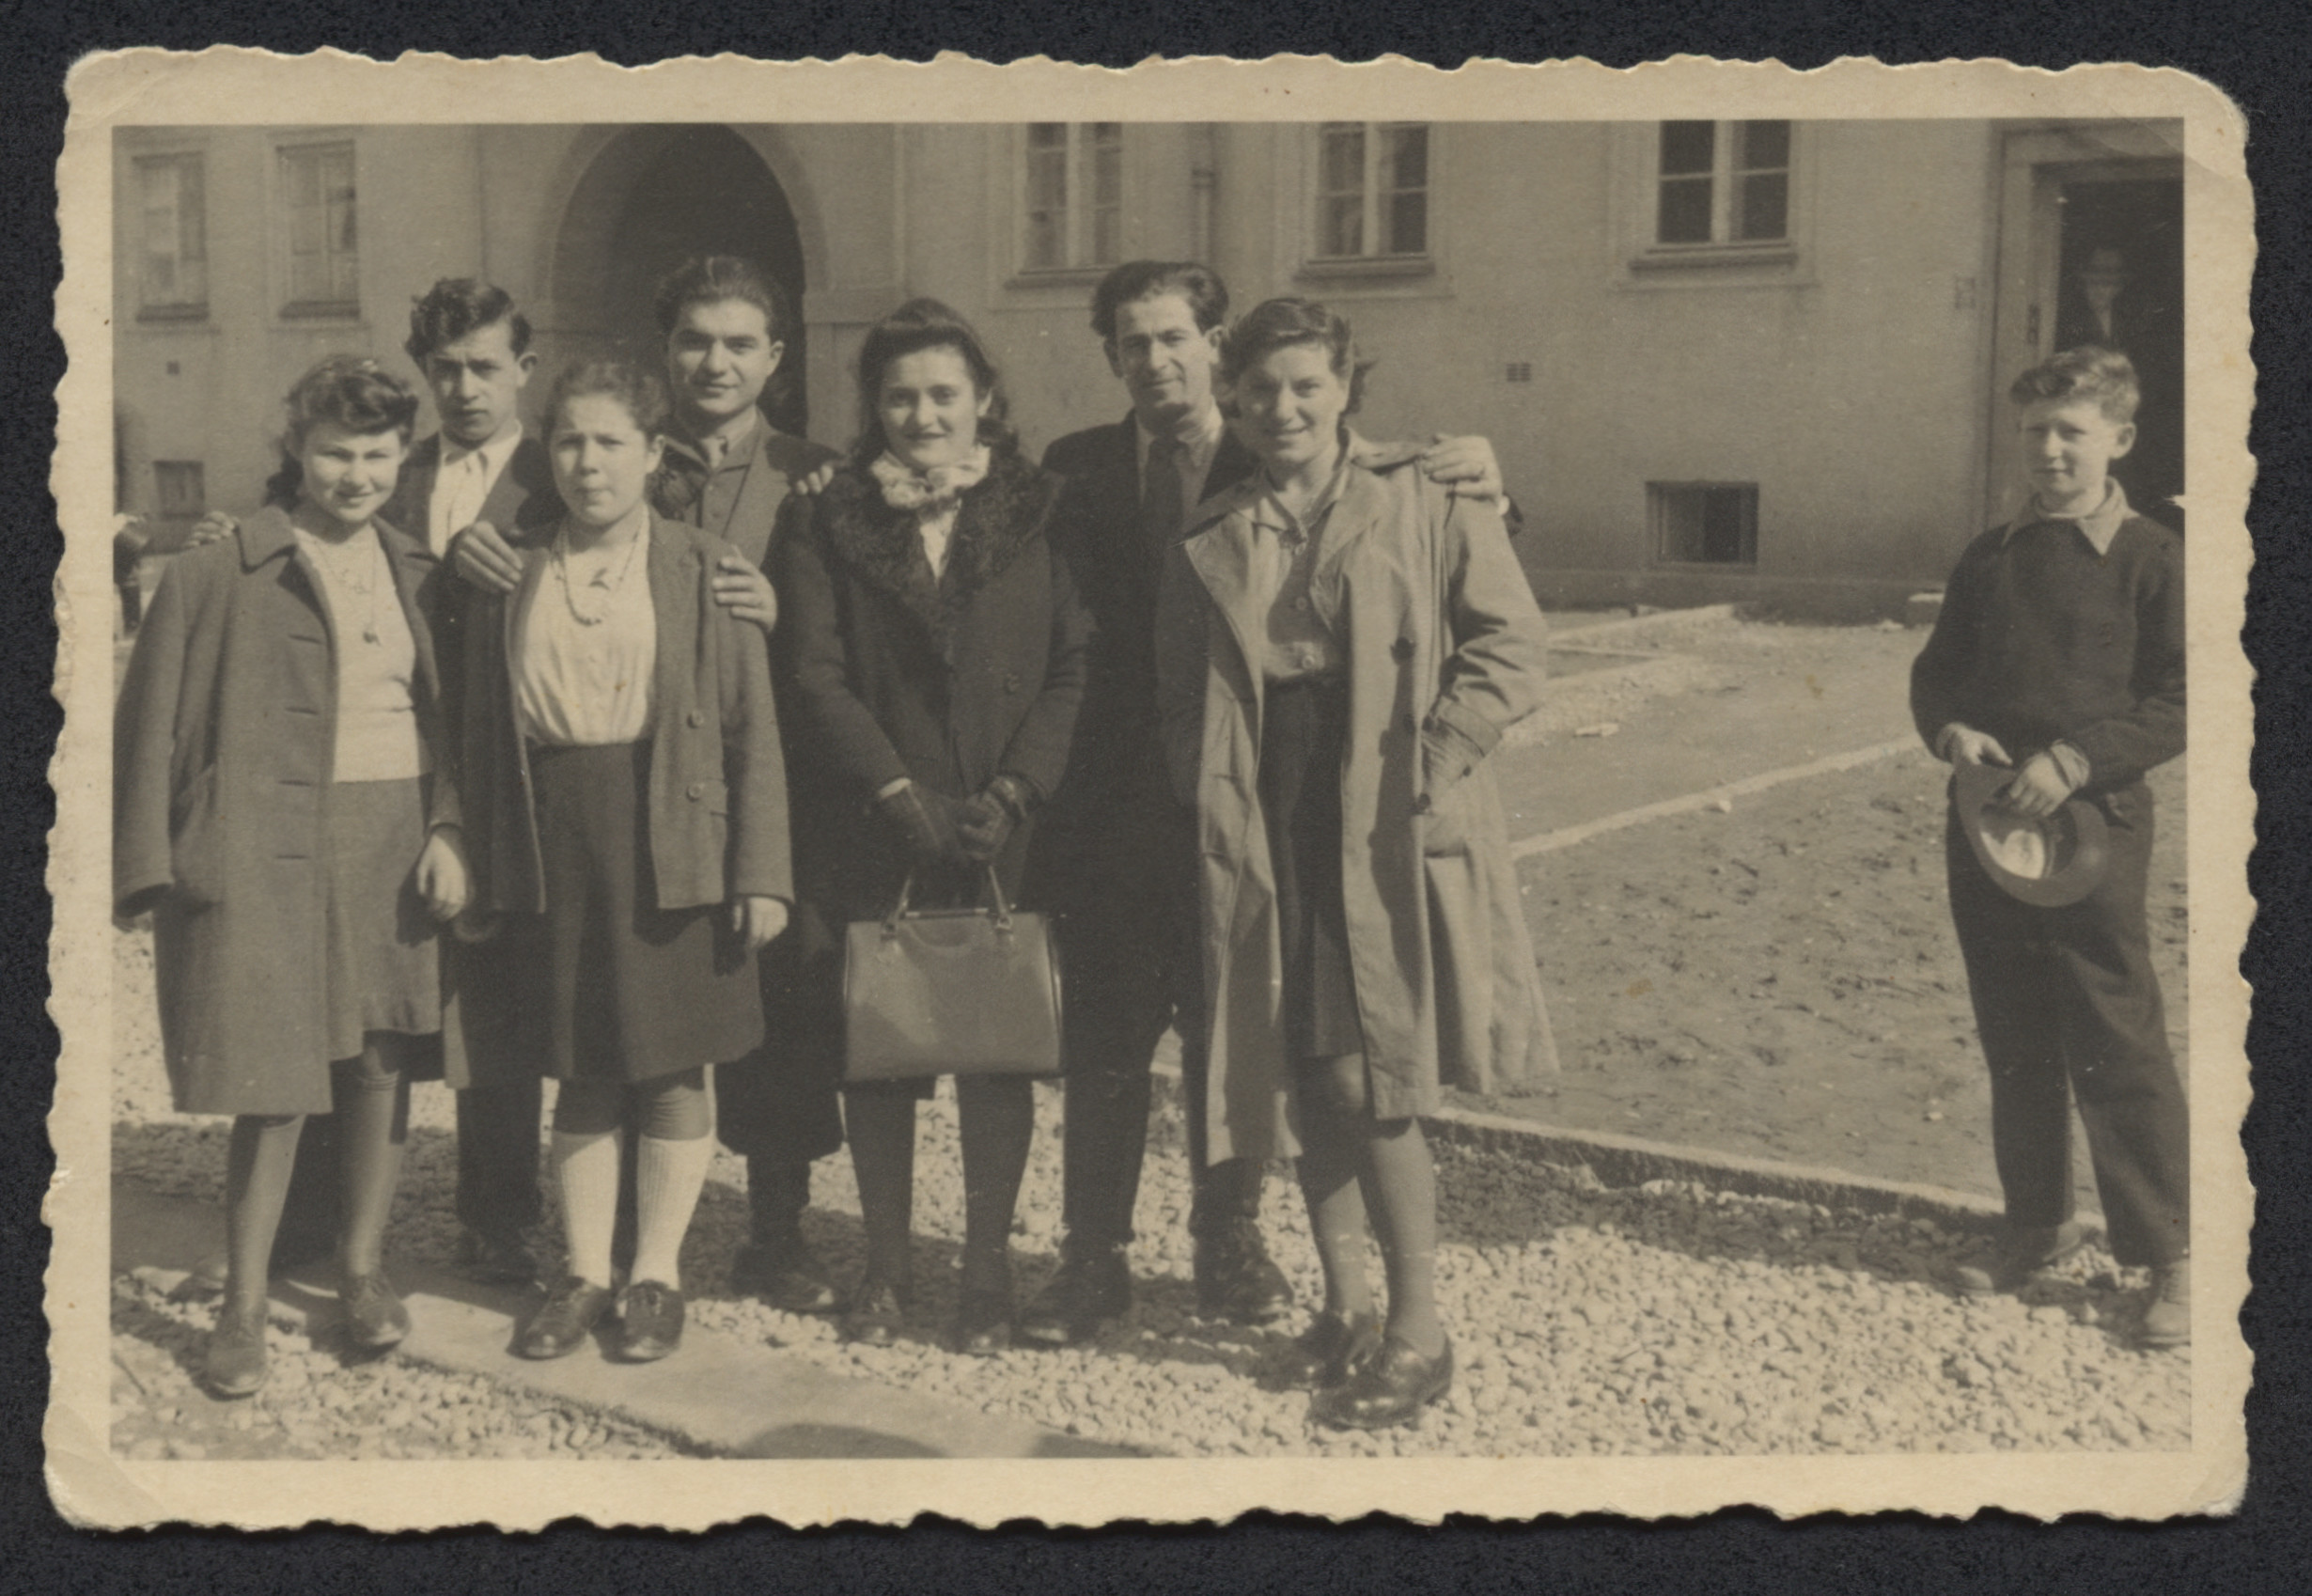 Group portrait of men and women in the Bindermichl displaced persons camp.  Among those pictured are William Abraham (fourth from the left.  His brother-in-law Simon Wizel is second from the right  with his arm around his wifeTzivya Abraham Wizel.